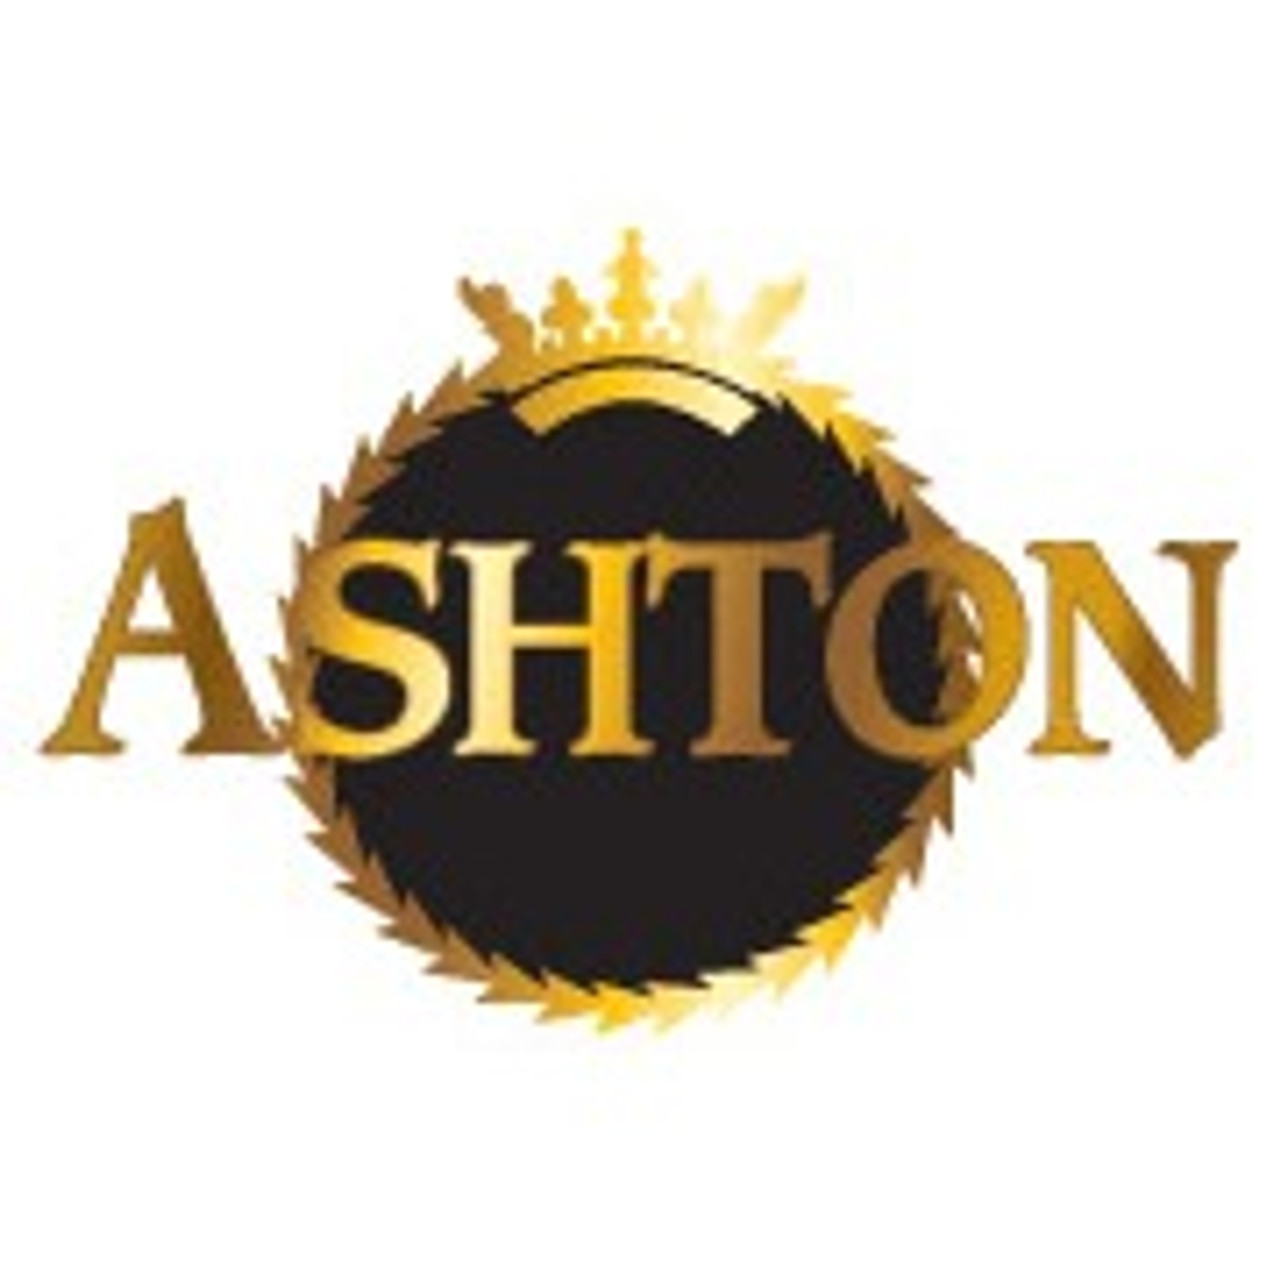 Ashton Double Magnum Cigars - 6 x 50 (Cedar Chest of 25)